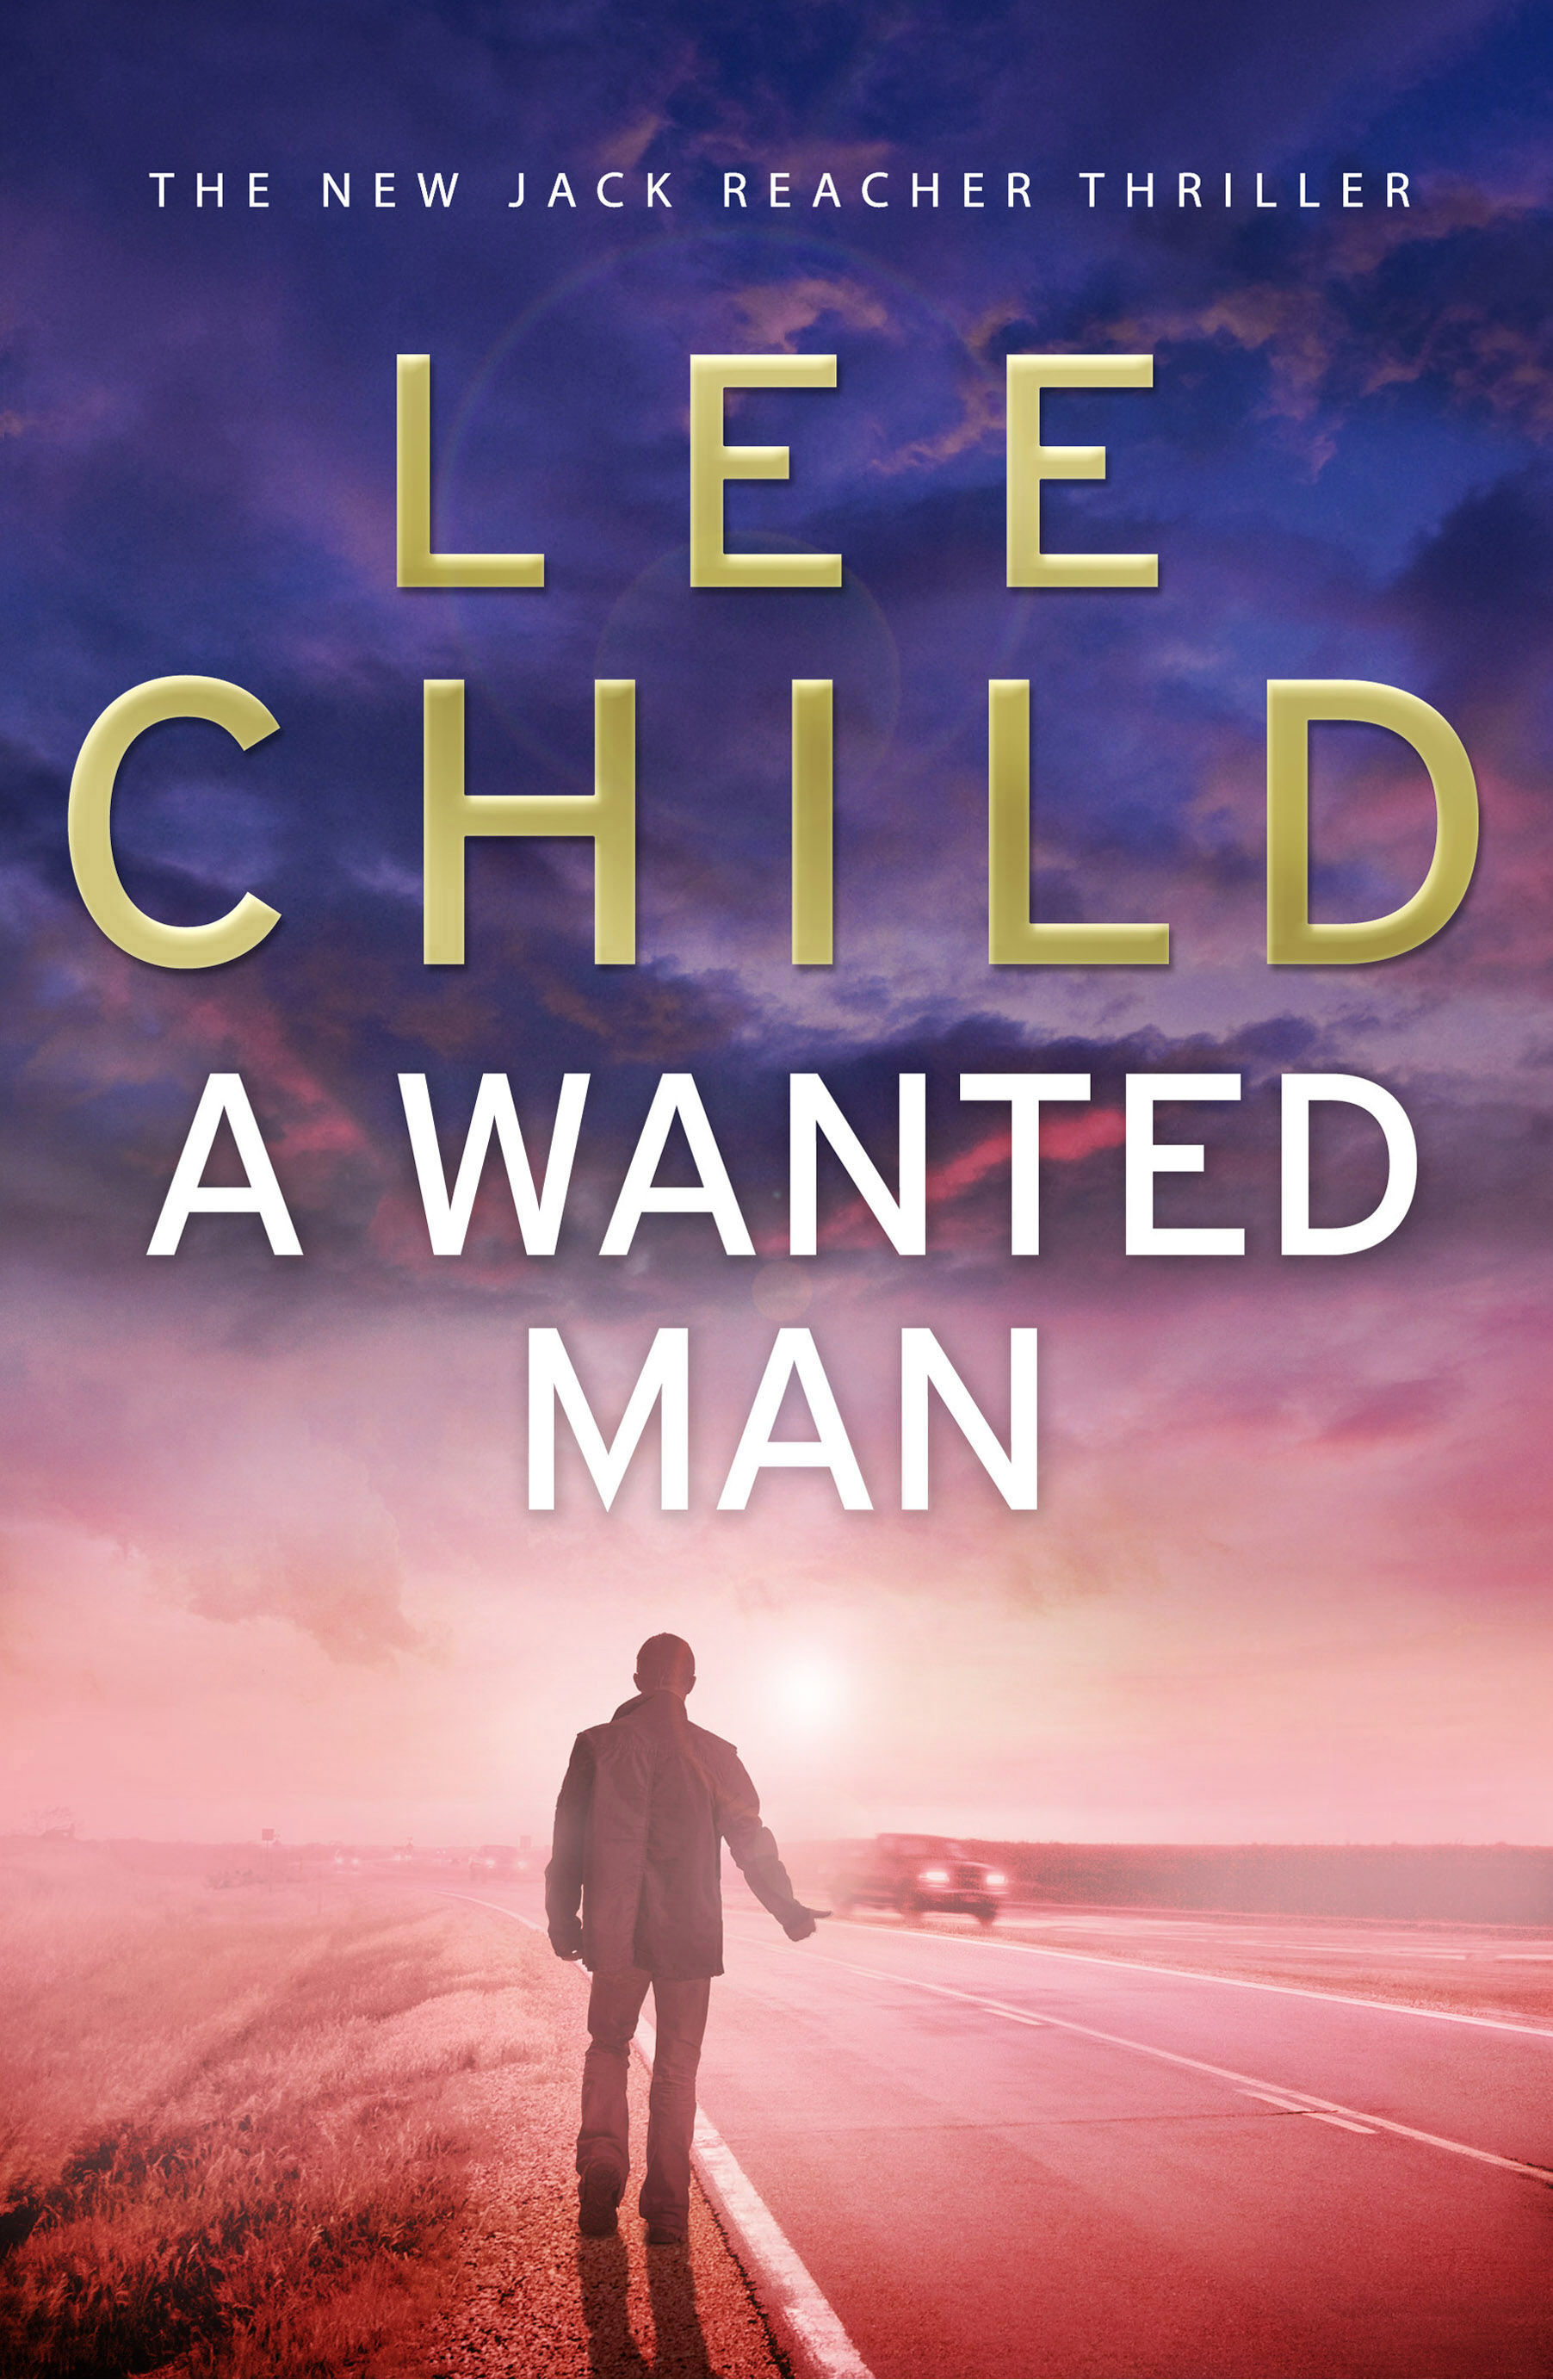 Wanted man lee child